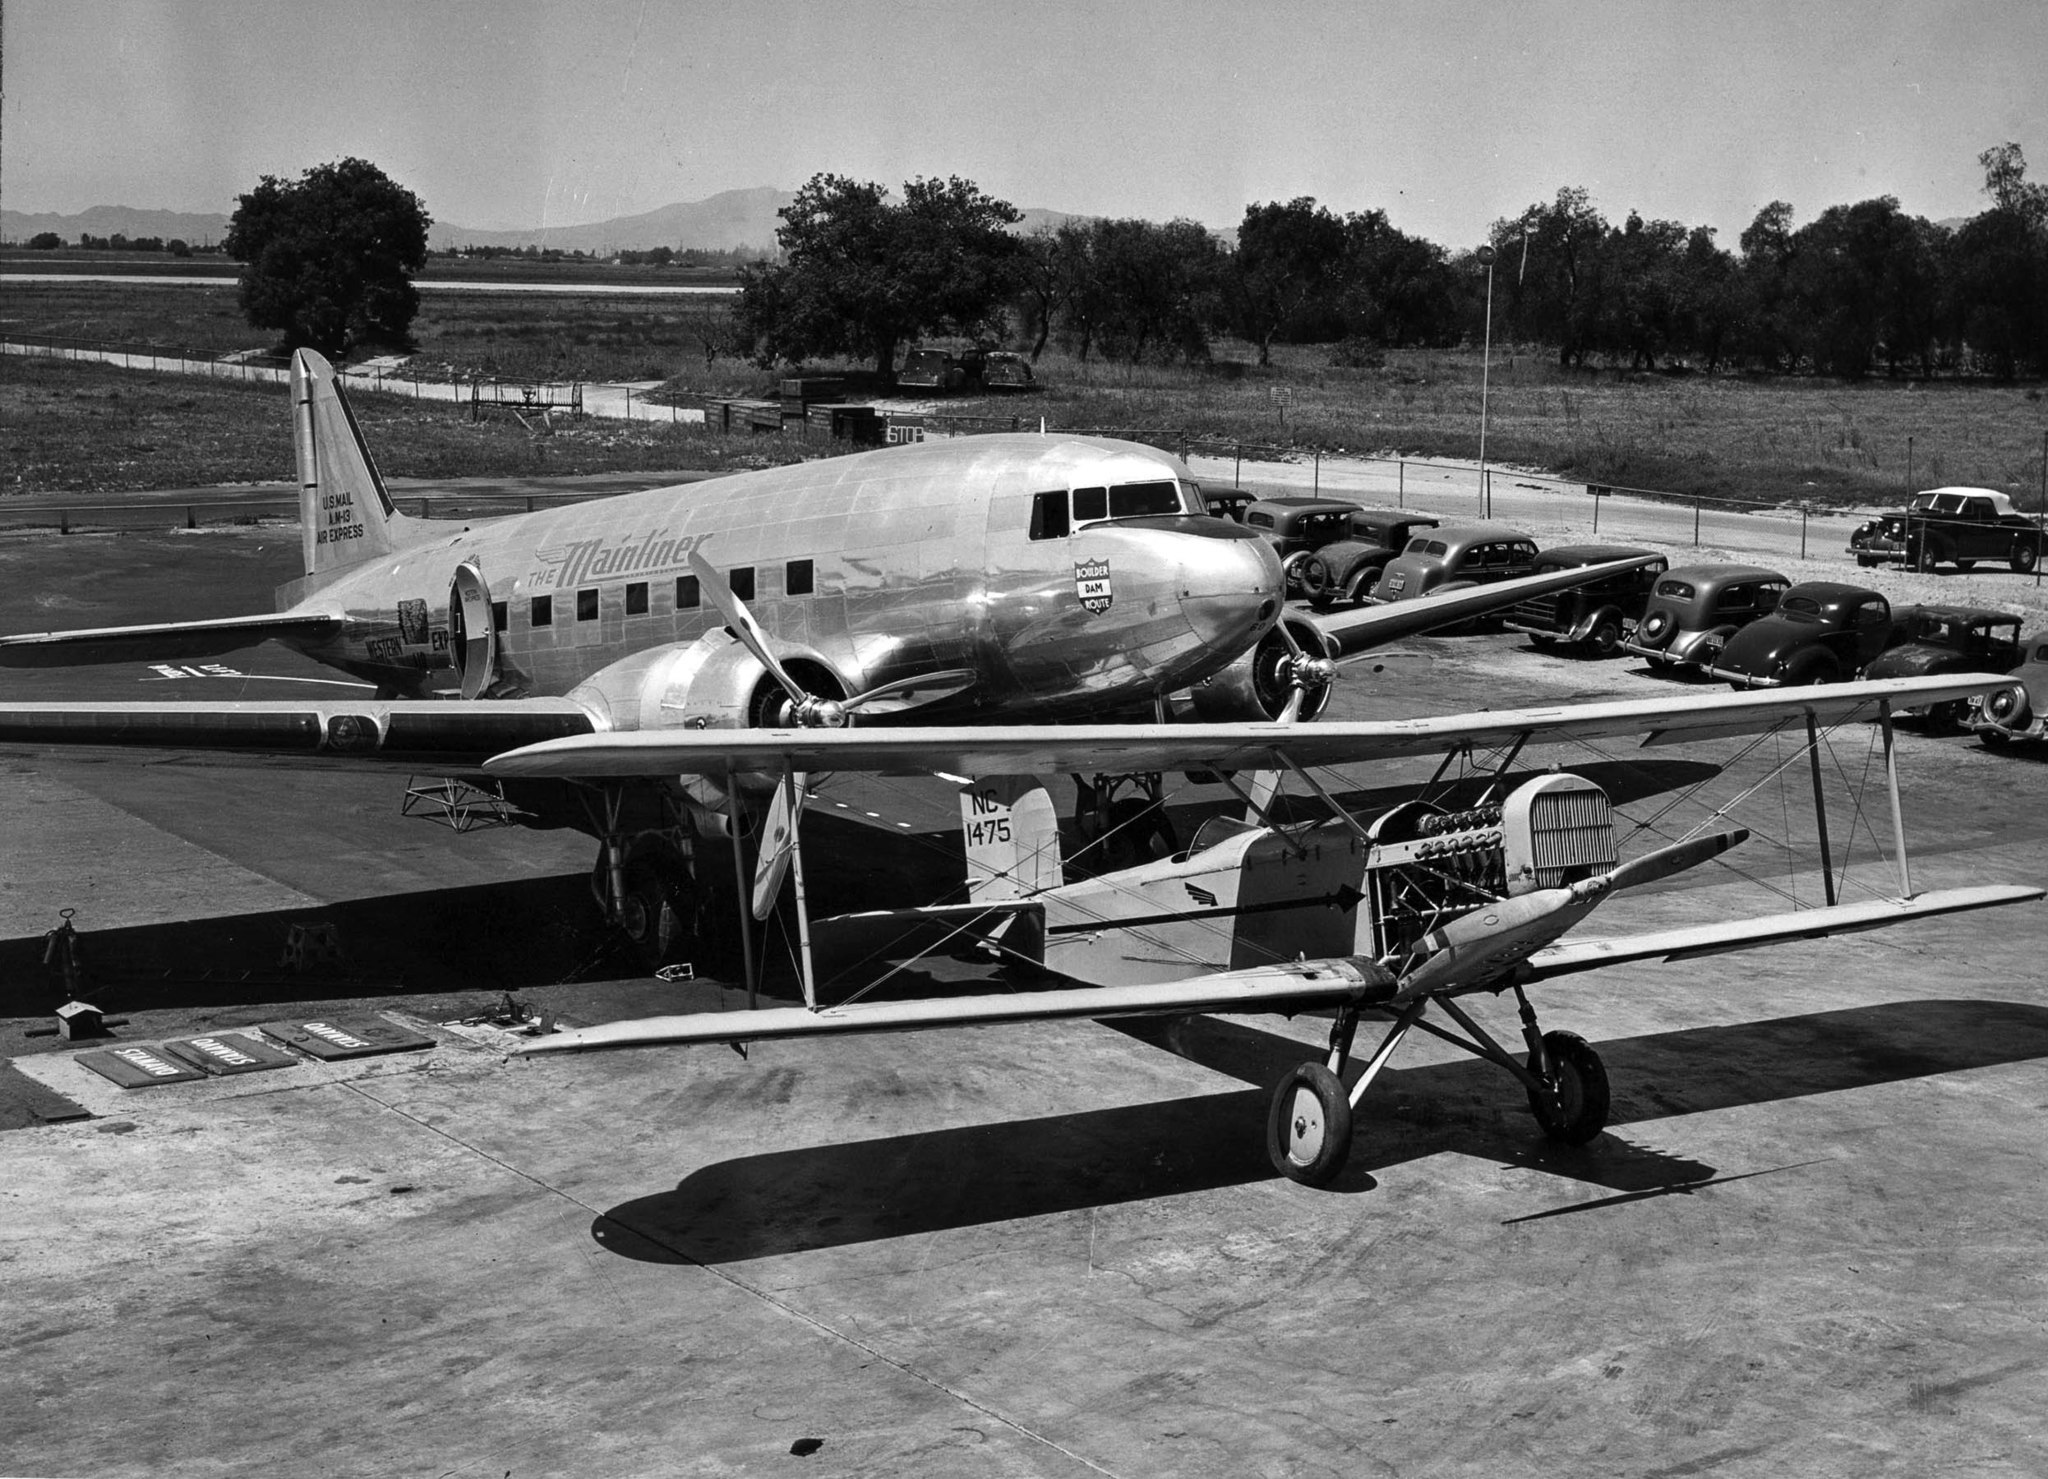 April 16, 1940: A Douglas M-2, first plane used by Western Air Express, and a Douglas DC-3, at Union